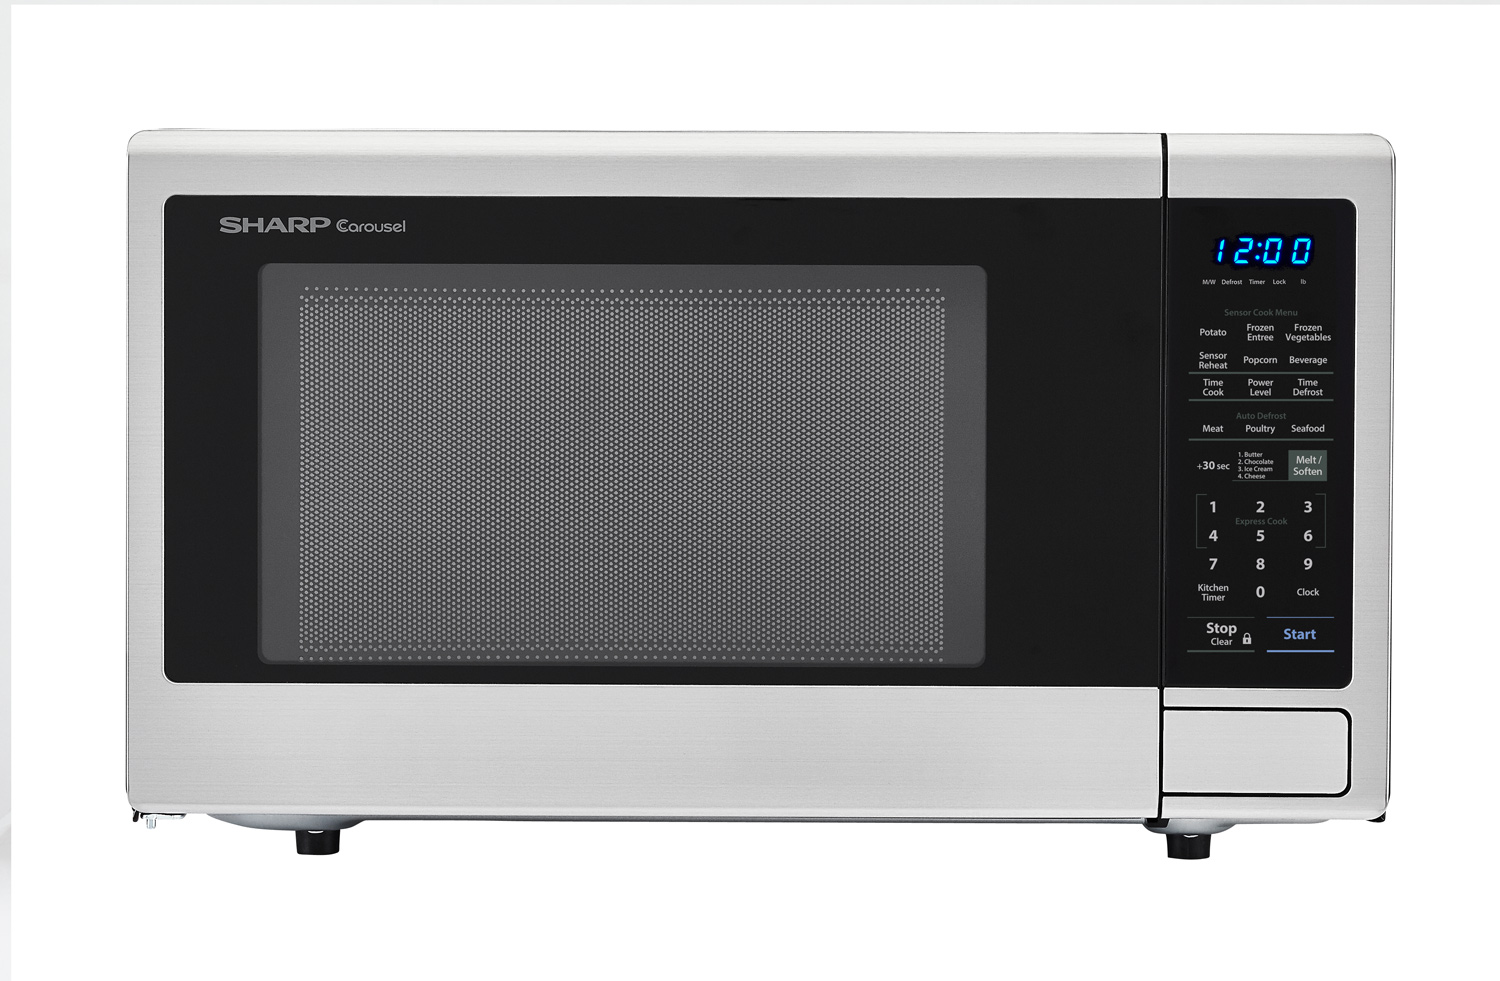 Smc1840cs 1 8 Cu Ft Stainless Steel Microwave Sharp